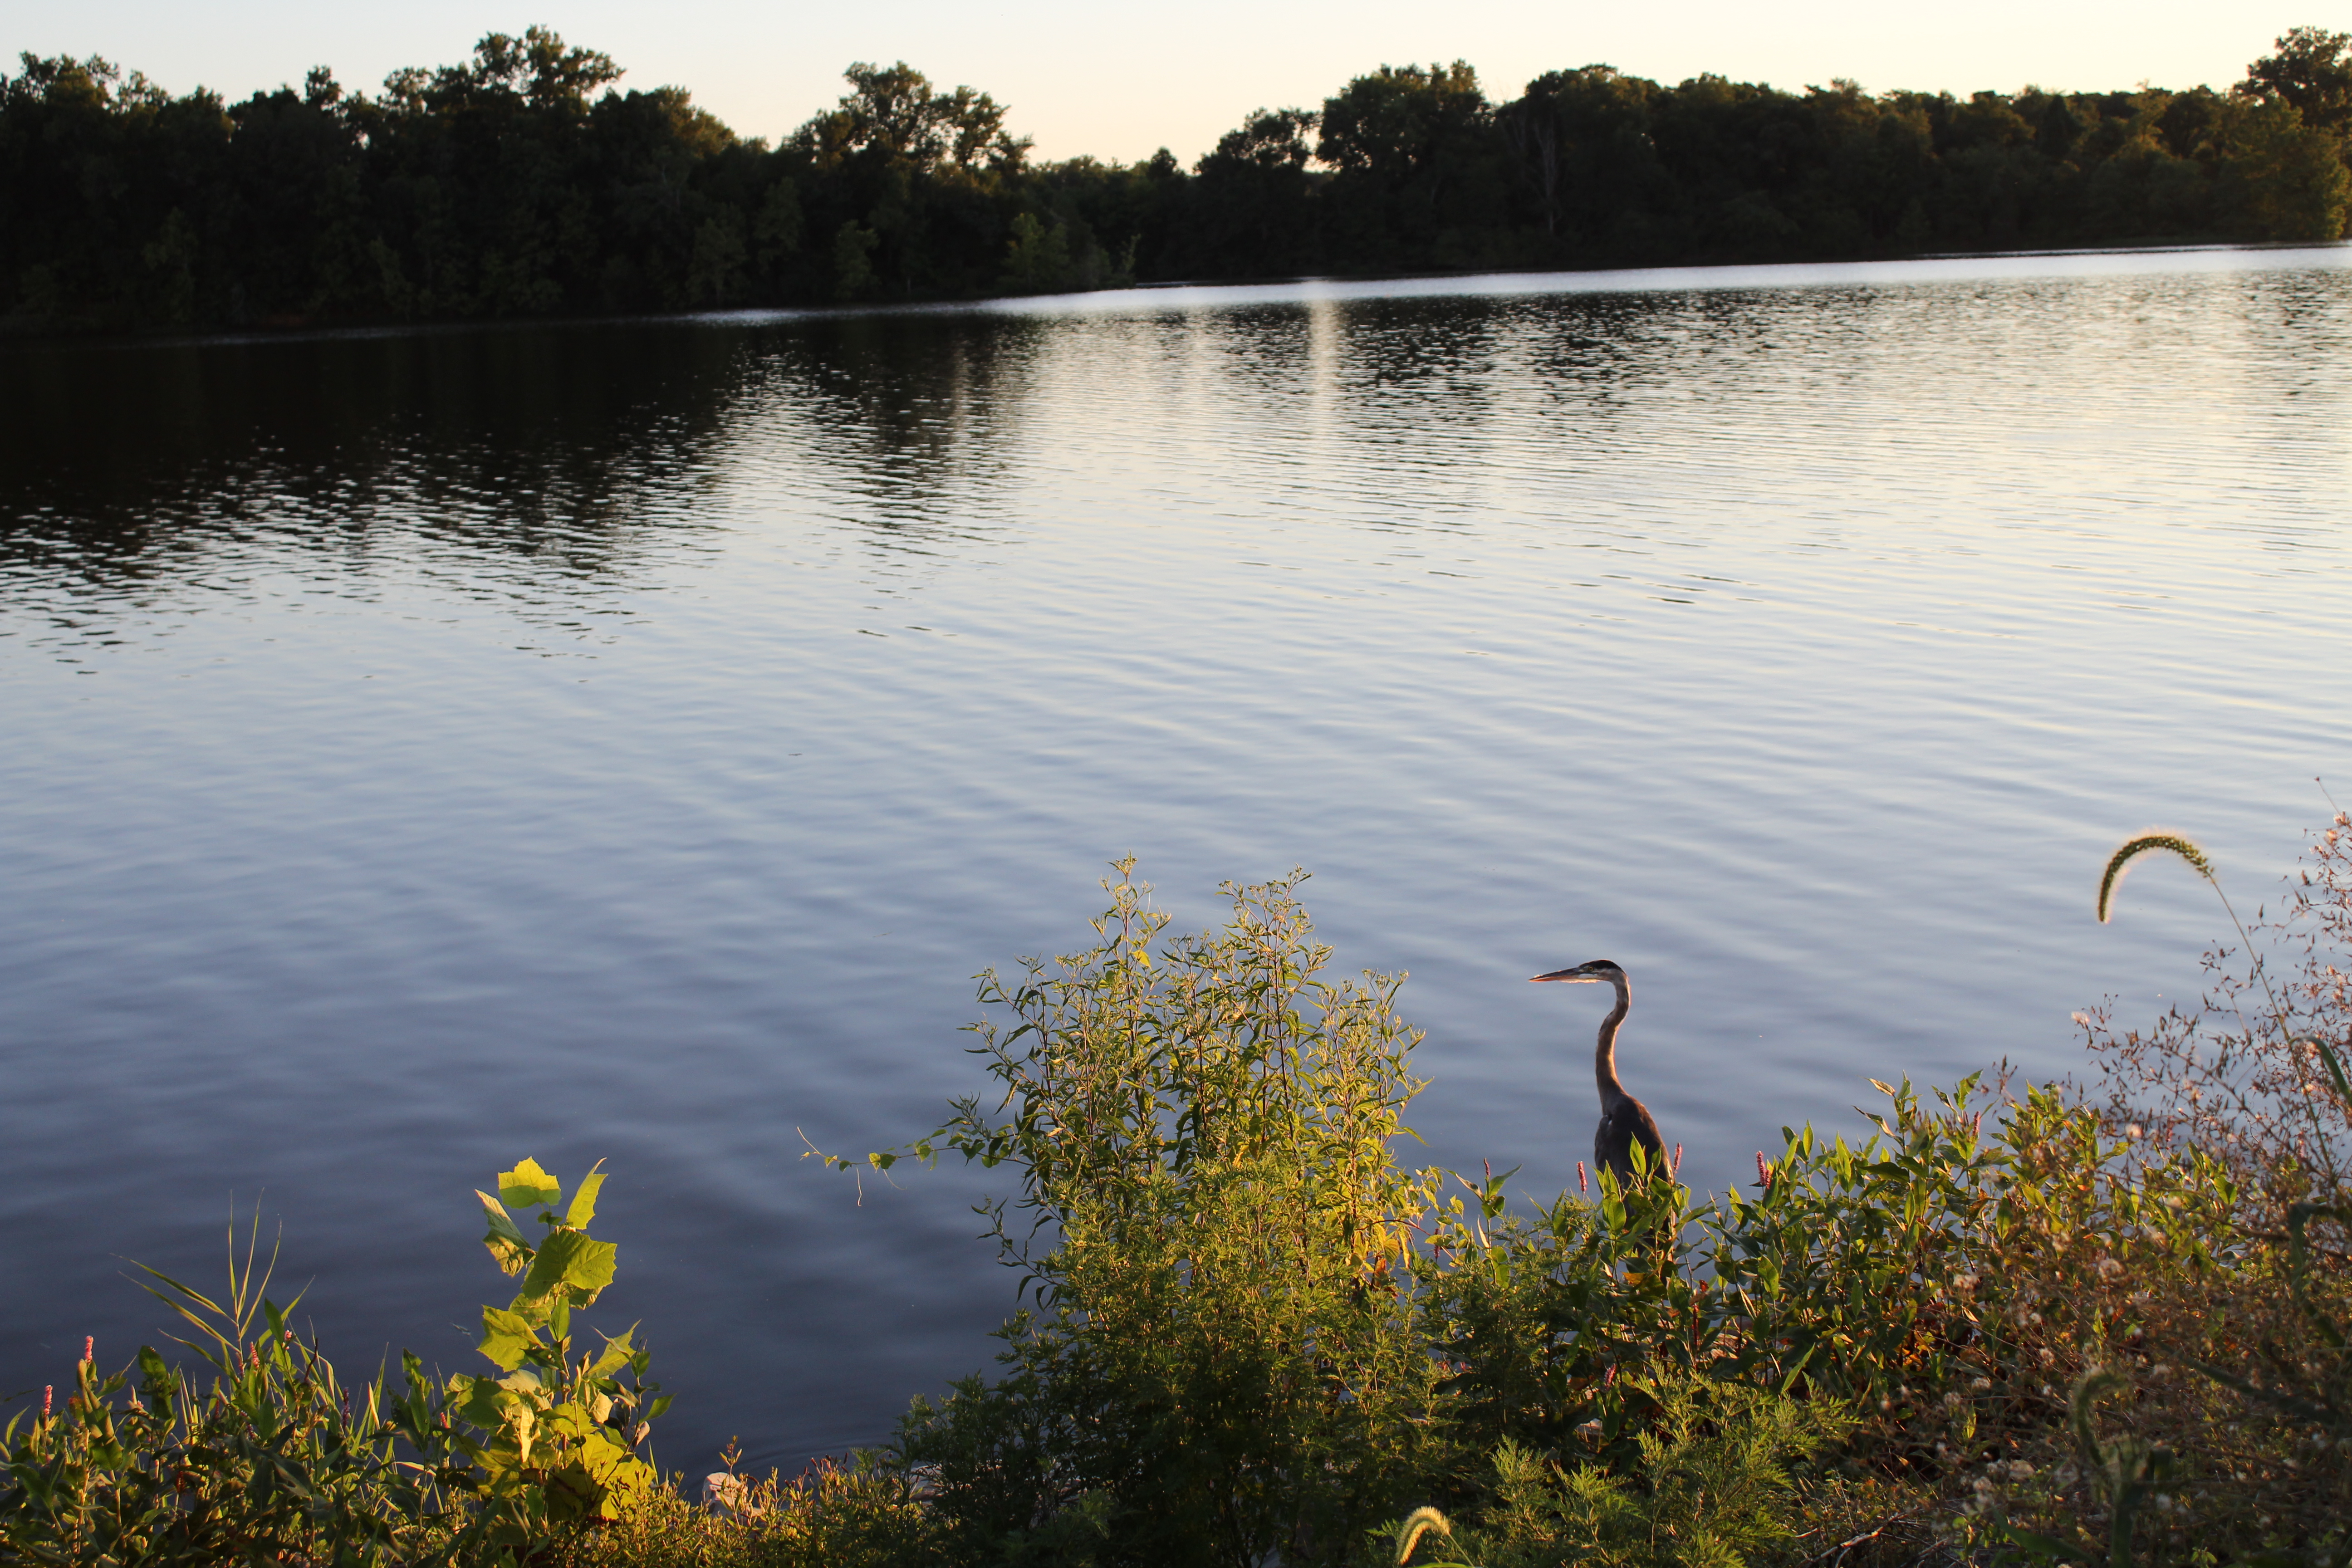 Crane at Crab Orchard Lake - August 5, 2020